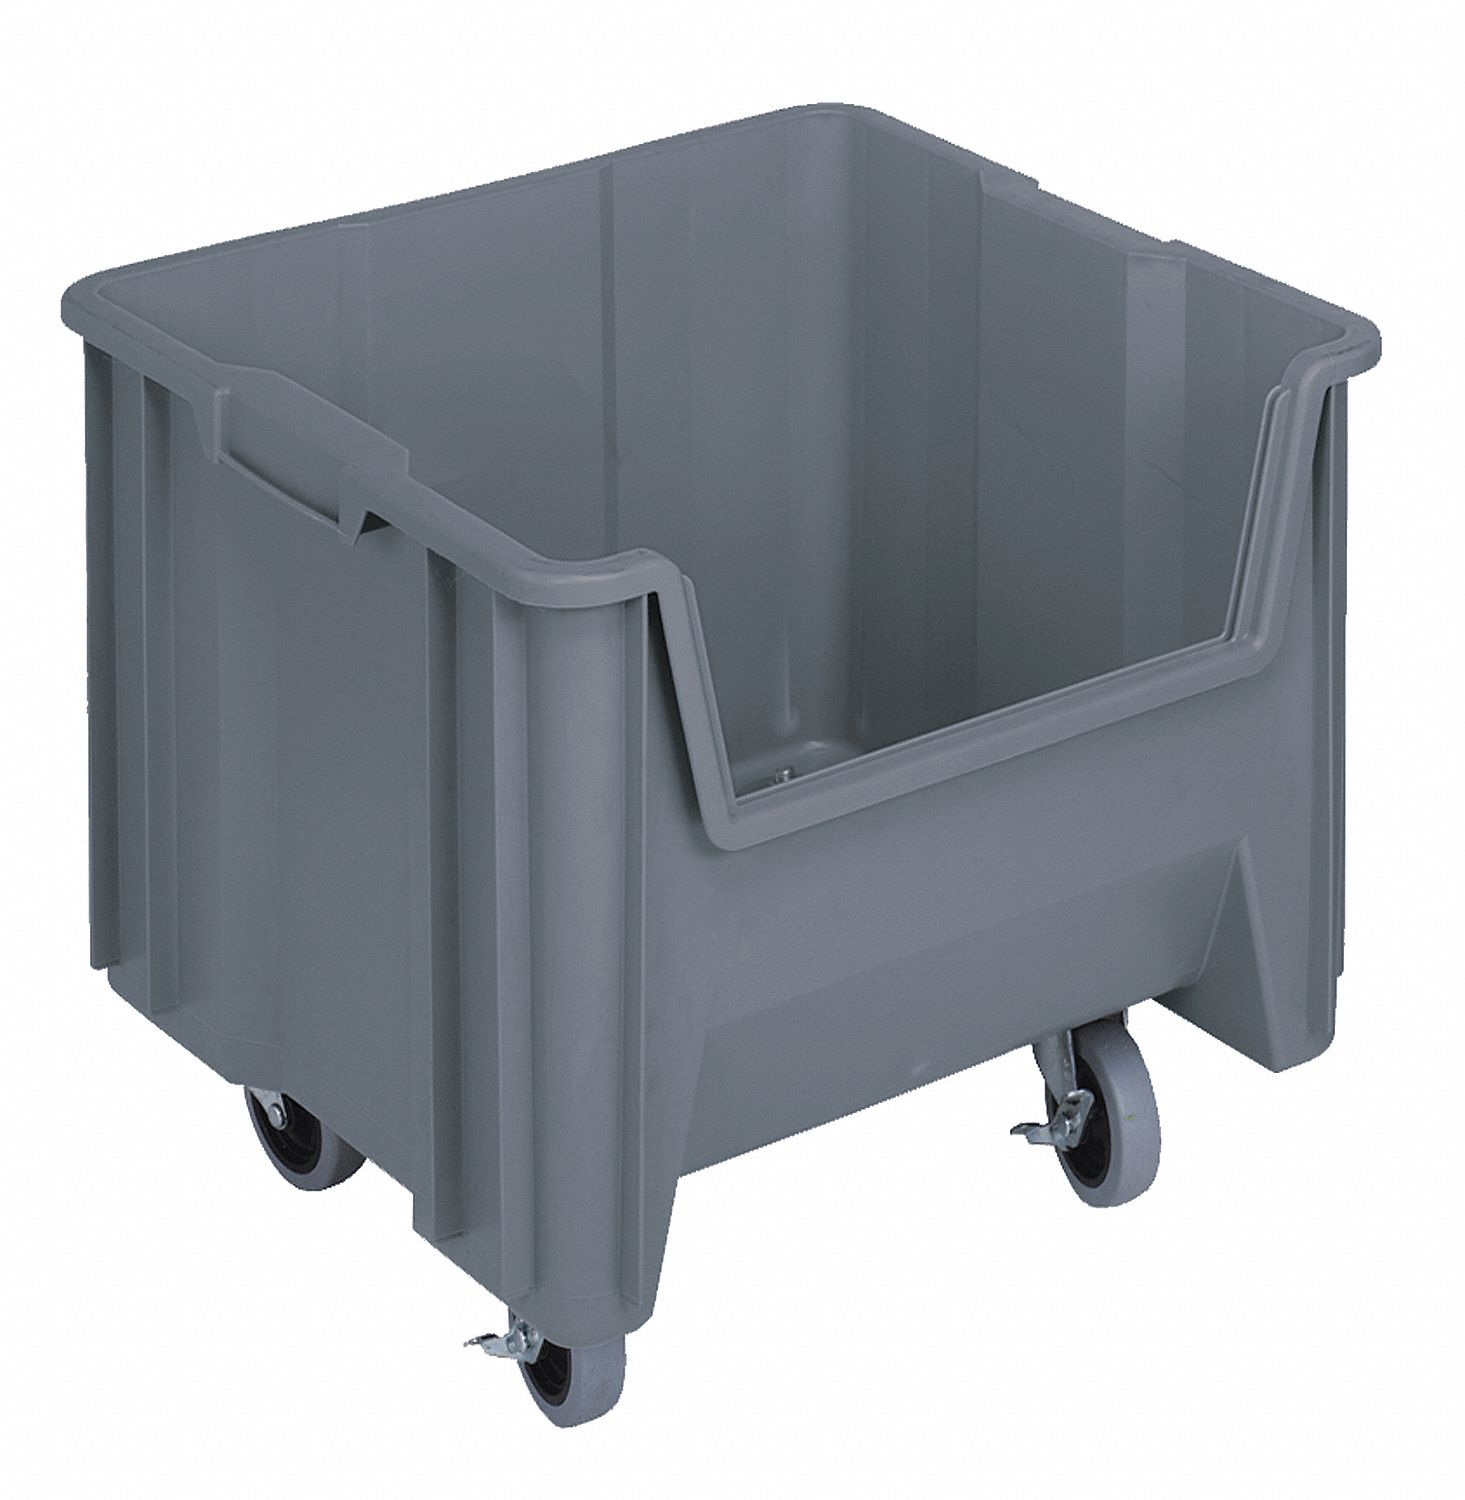 Mobile Hopper Bin, Gray, 15-3/4